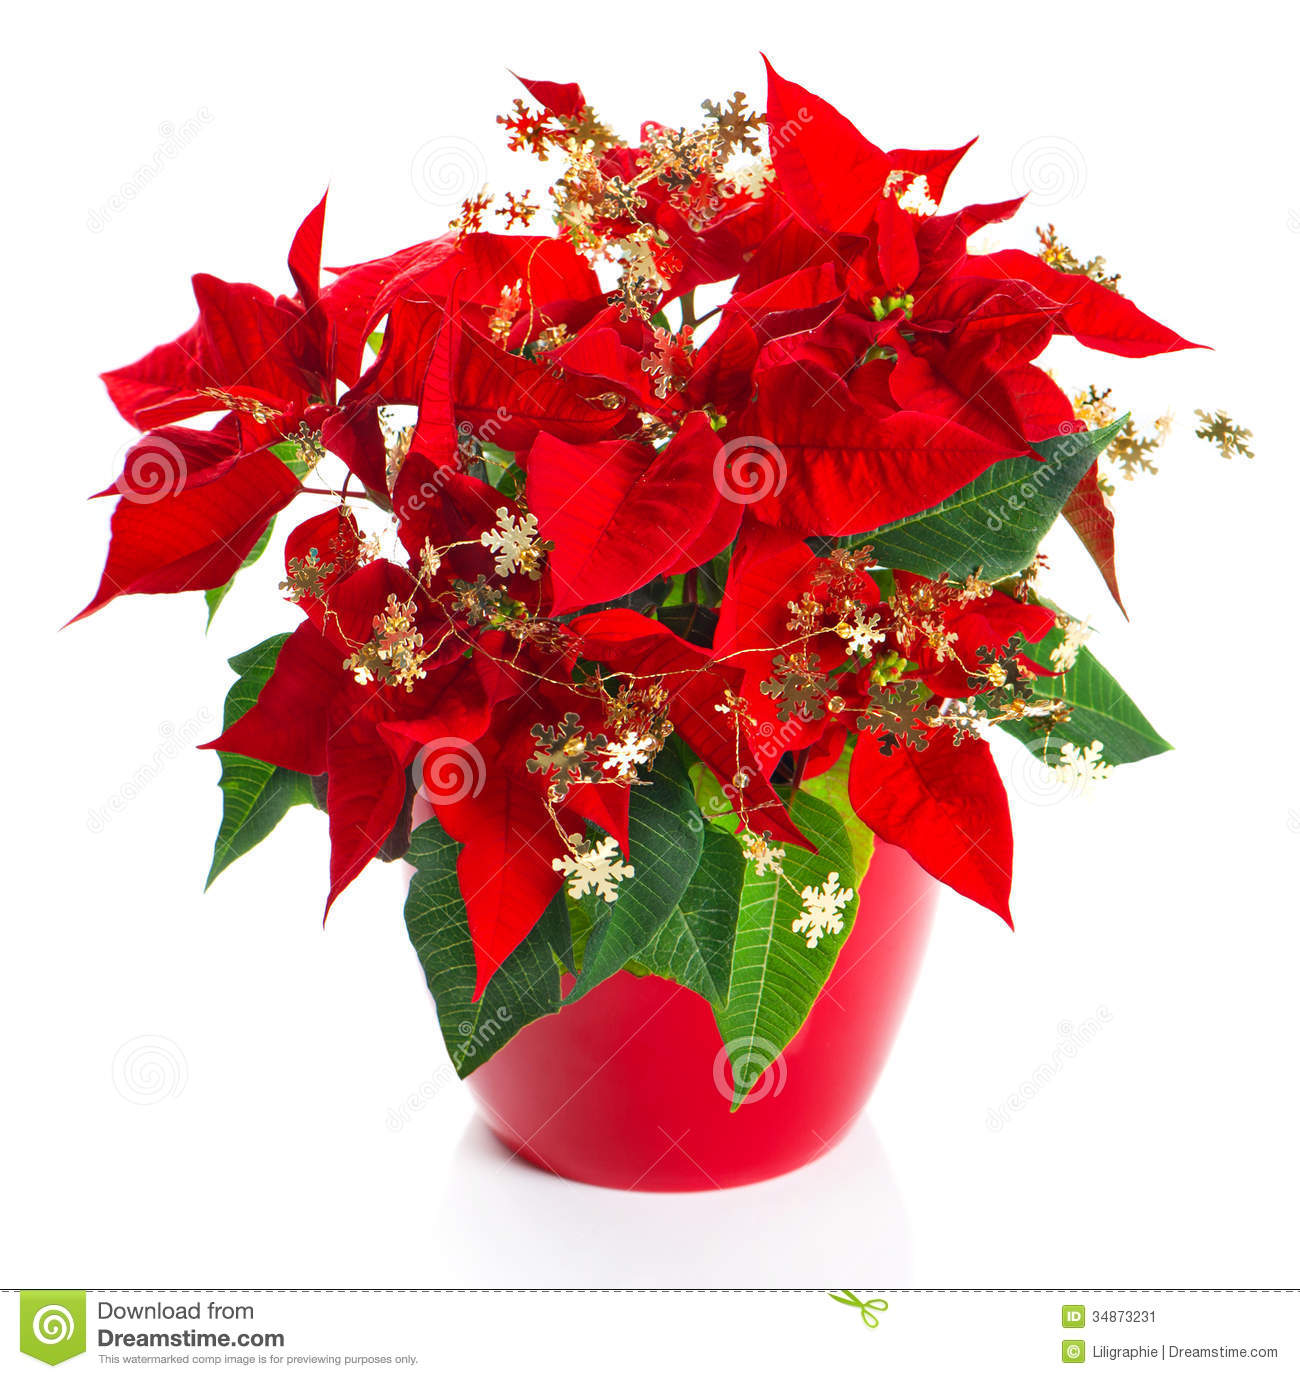 Christmas flower red poinsettia with golden decoration